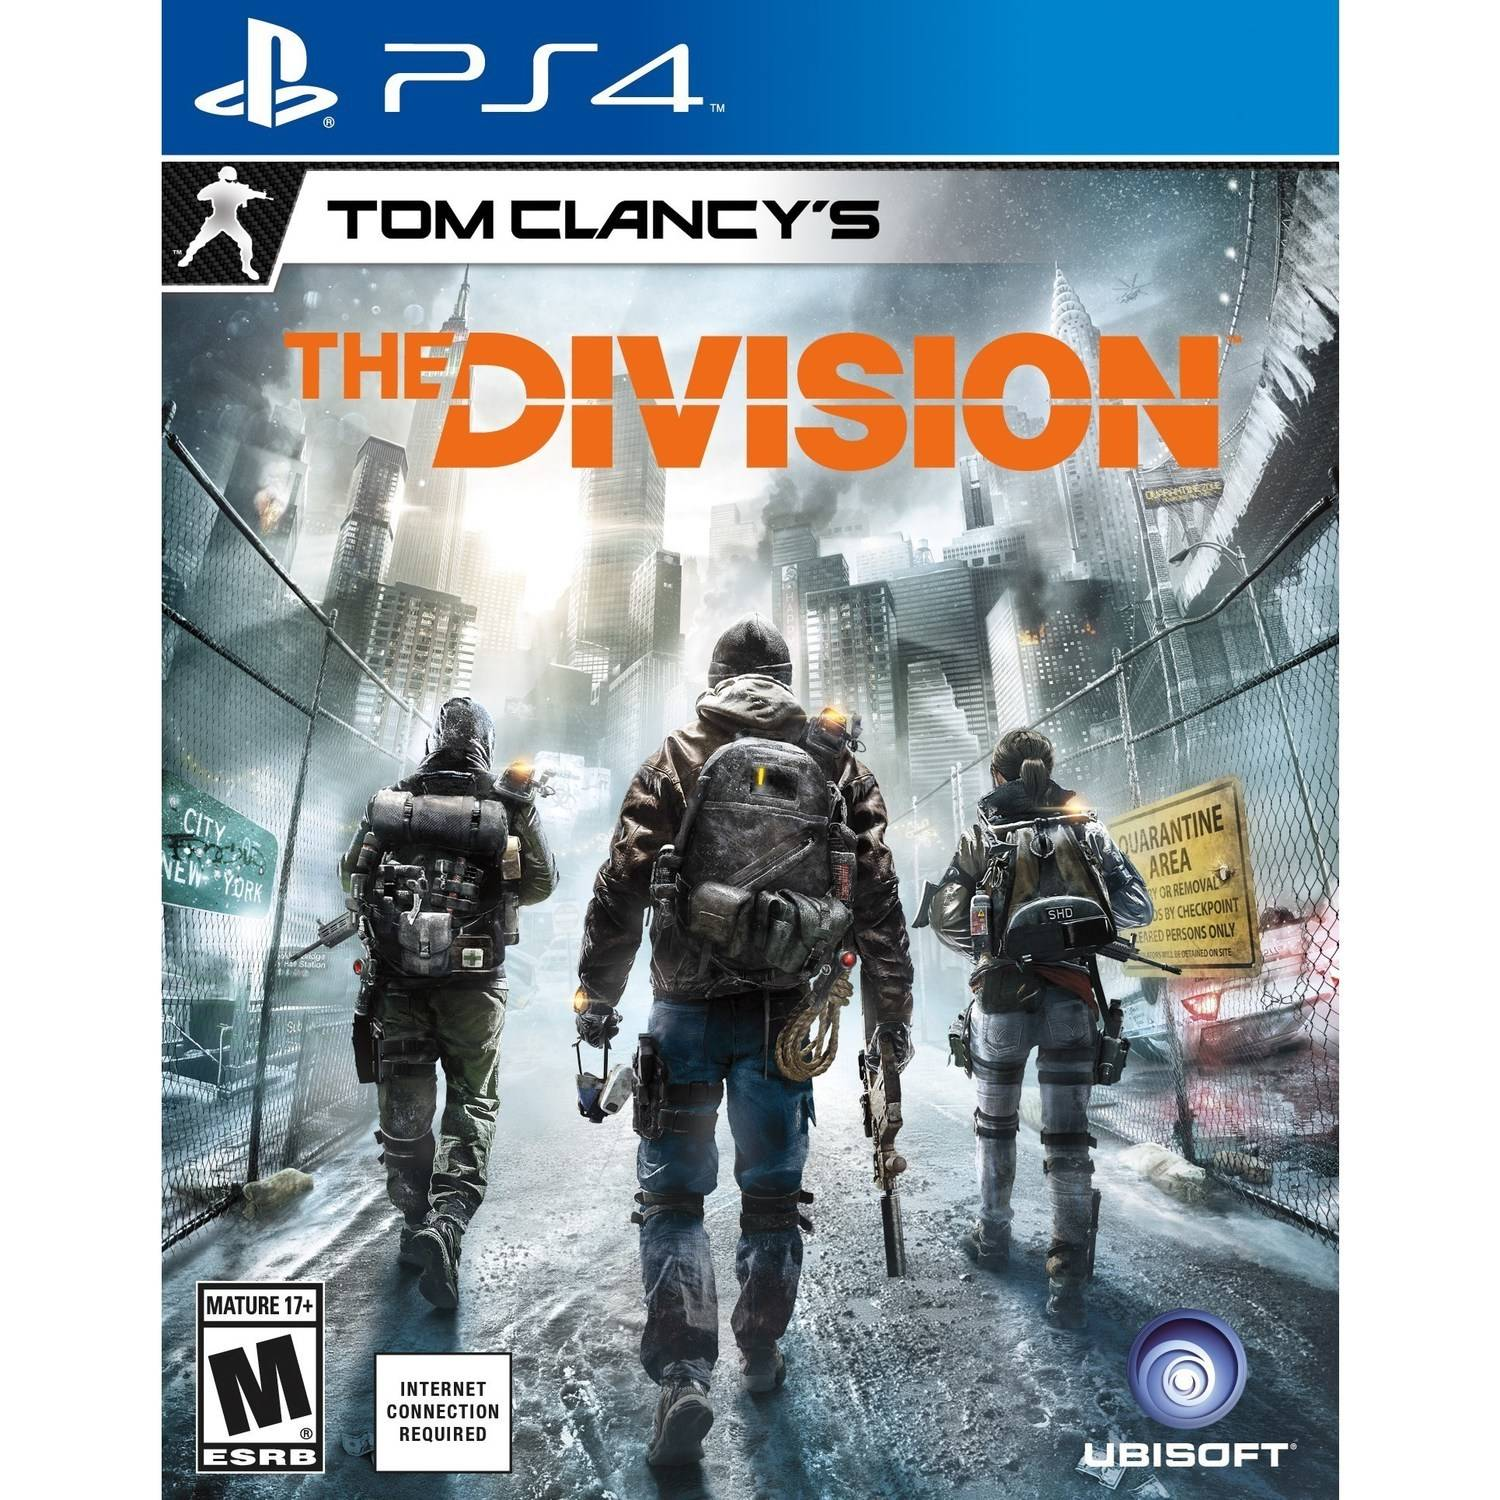 Tom Clancy's The Division - Pre-Owned (PS4)